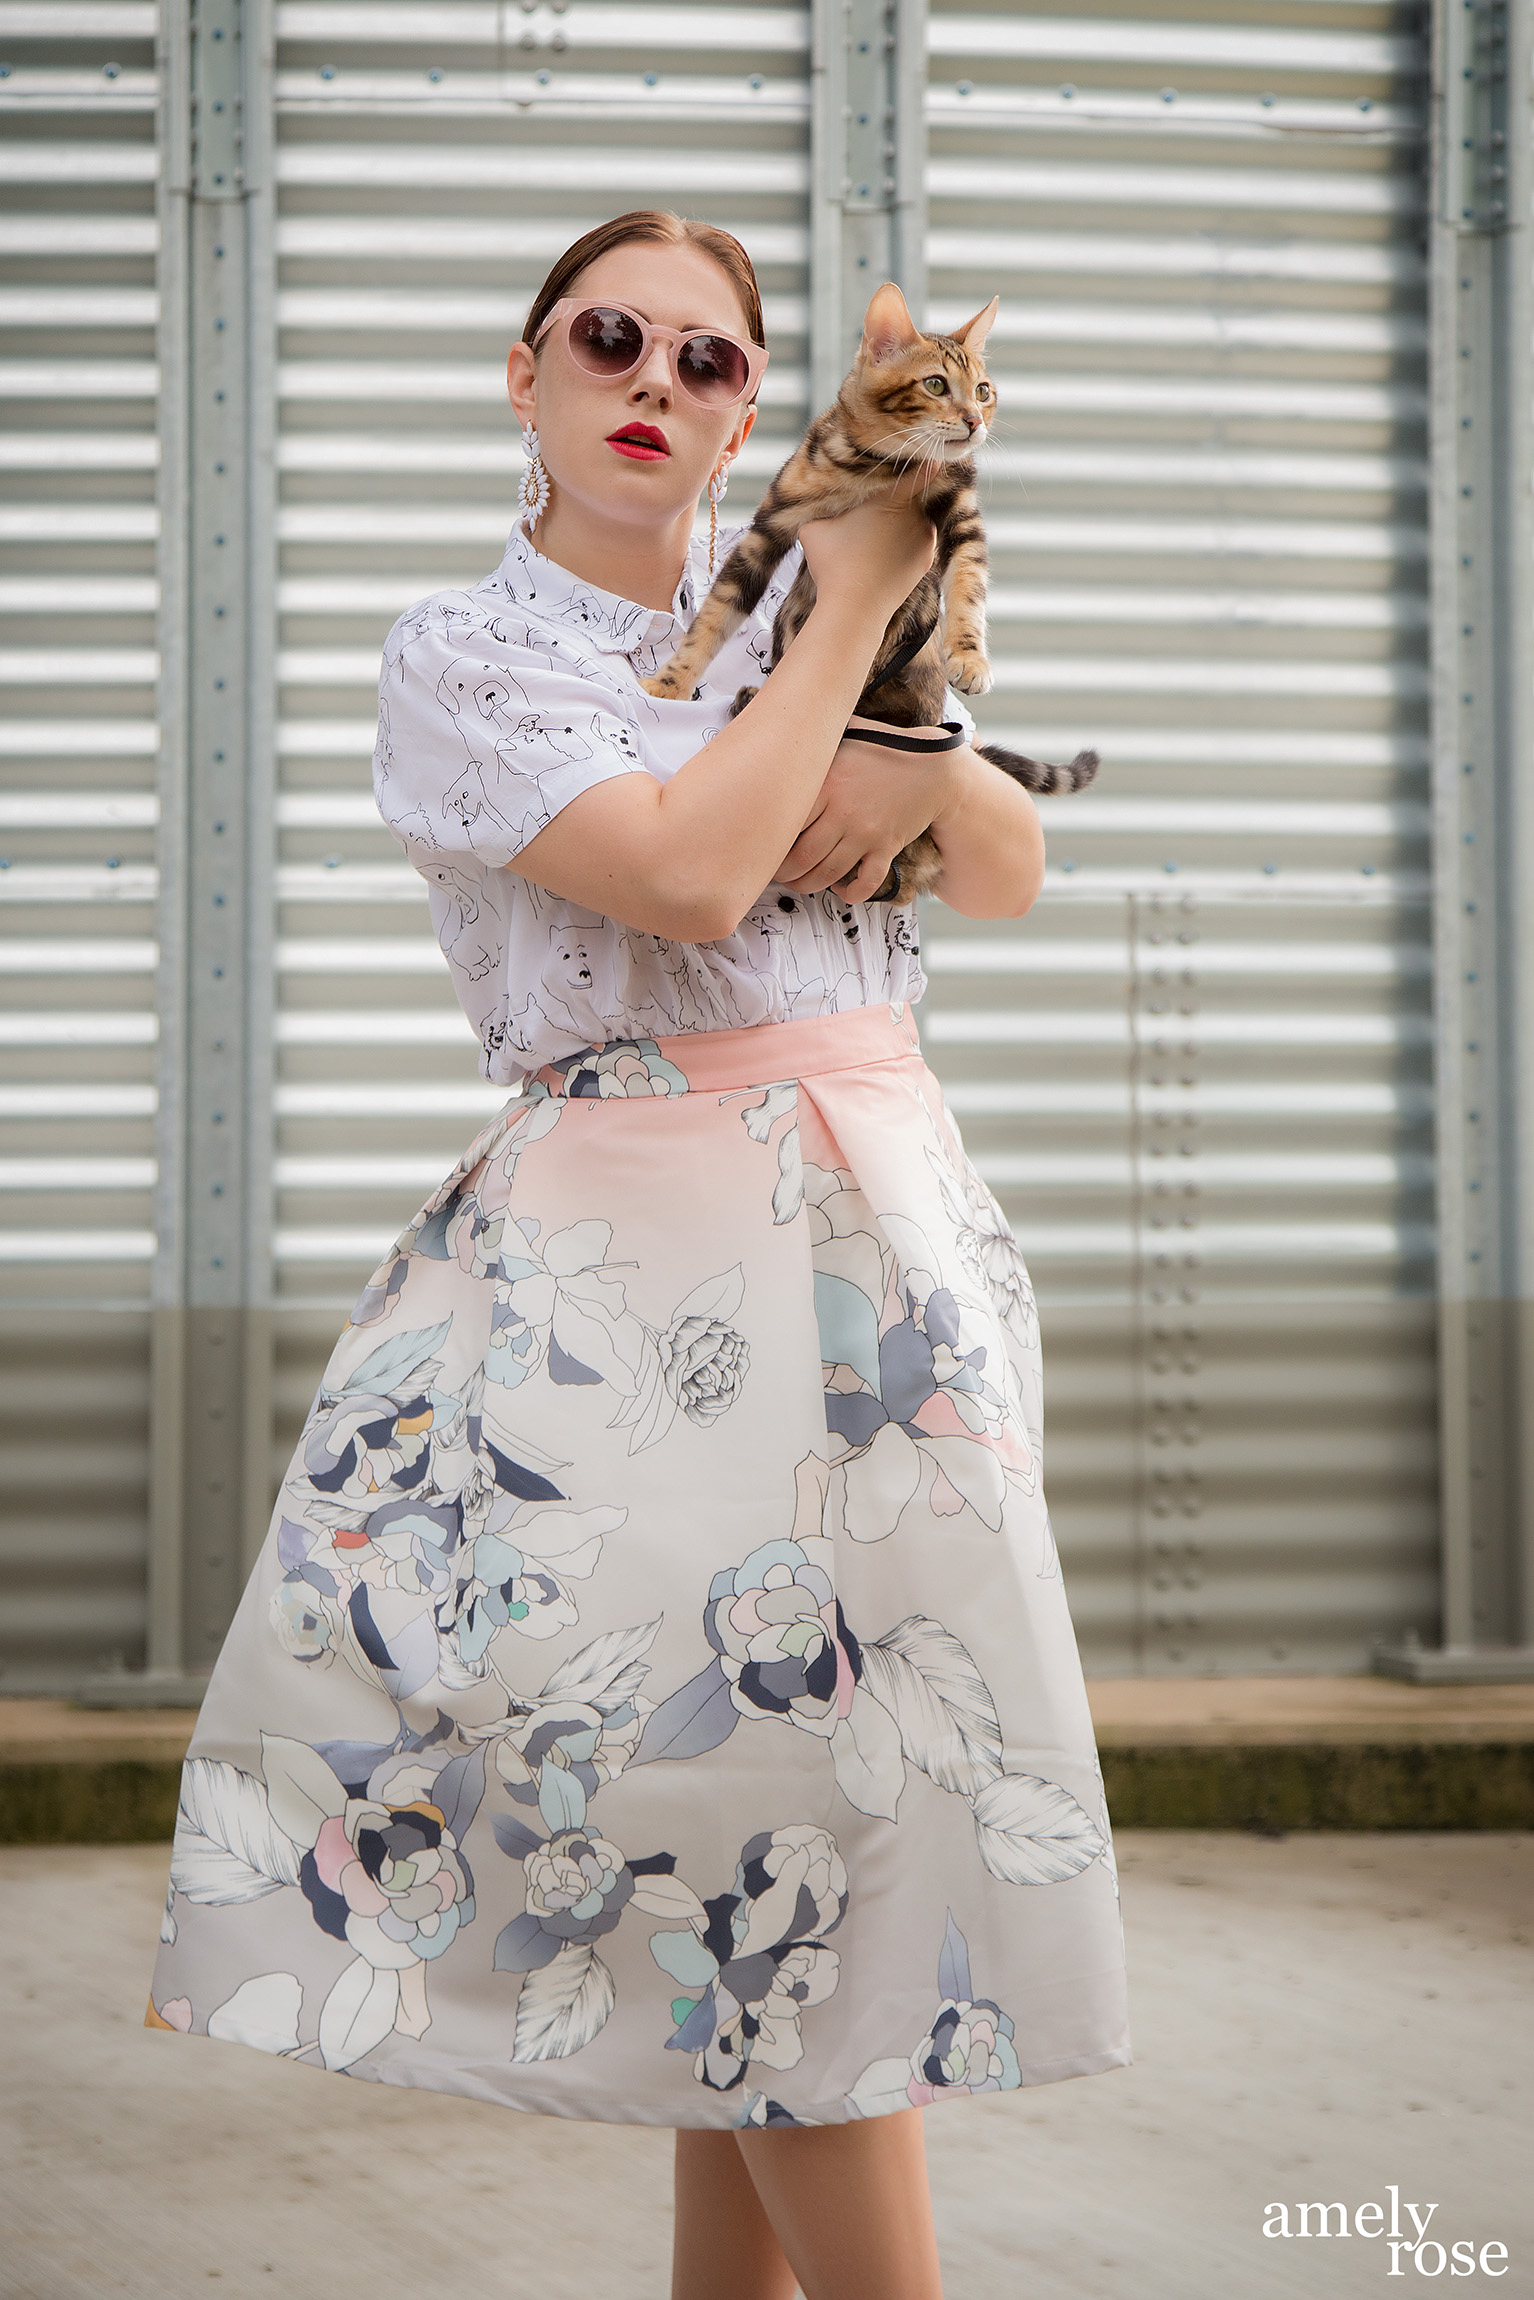 amelyrose_amely_rose_catwalk_bengal_catcontent_adventurecat_kitten_bengalcat_sommerlook_cat_katze_midiskirt